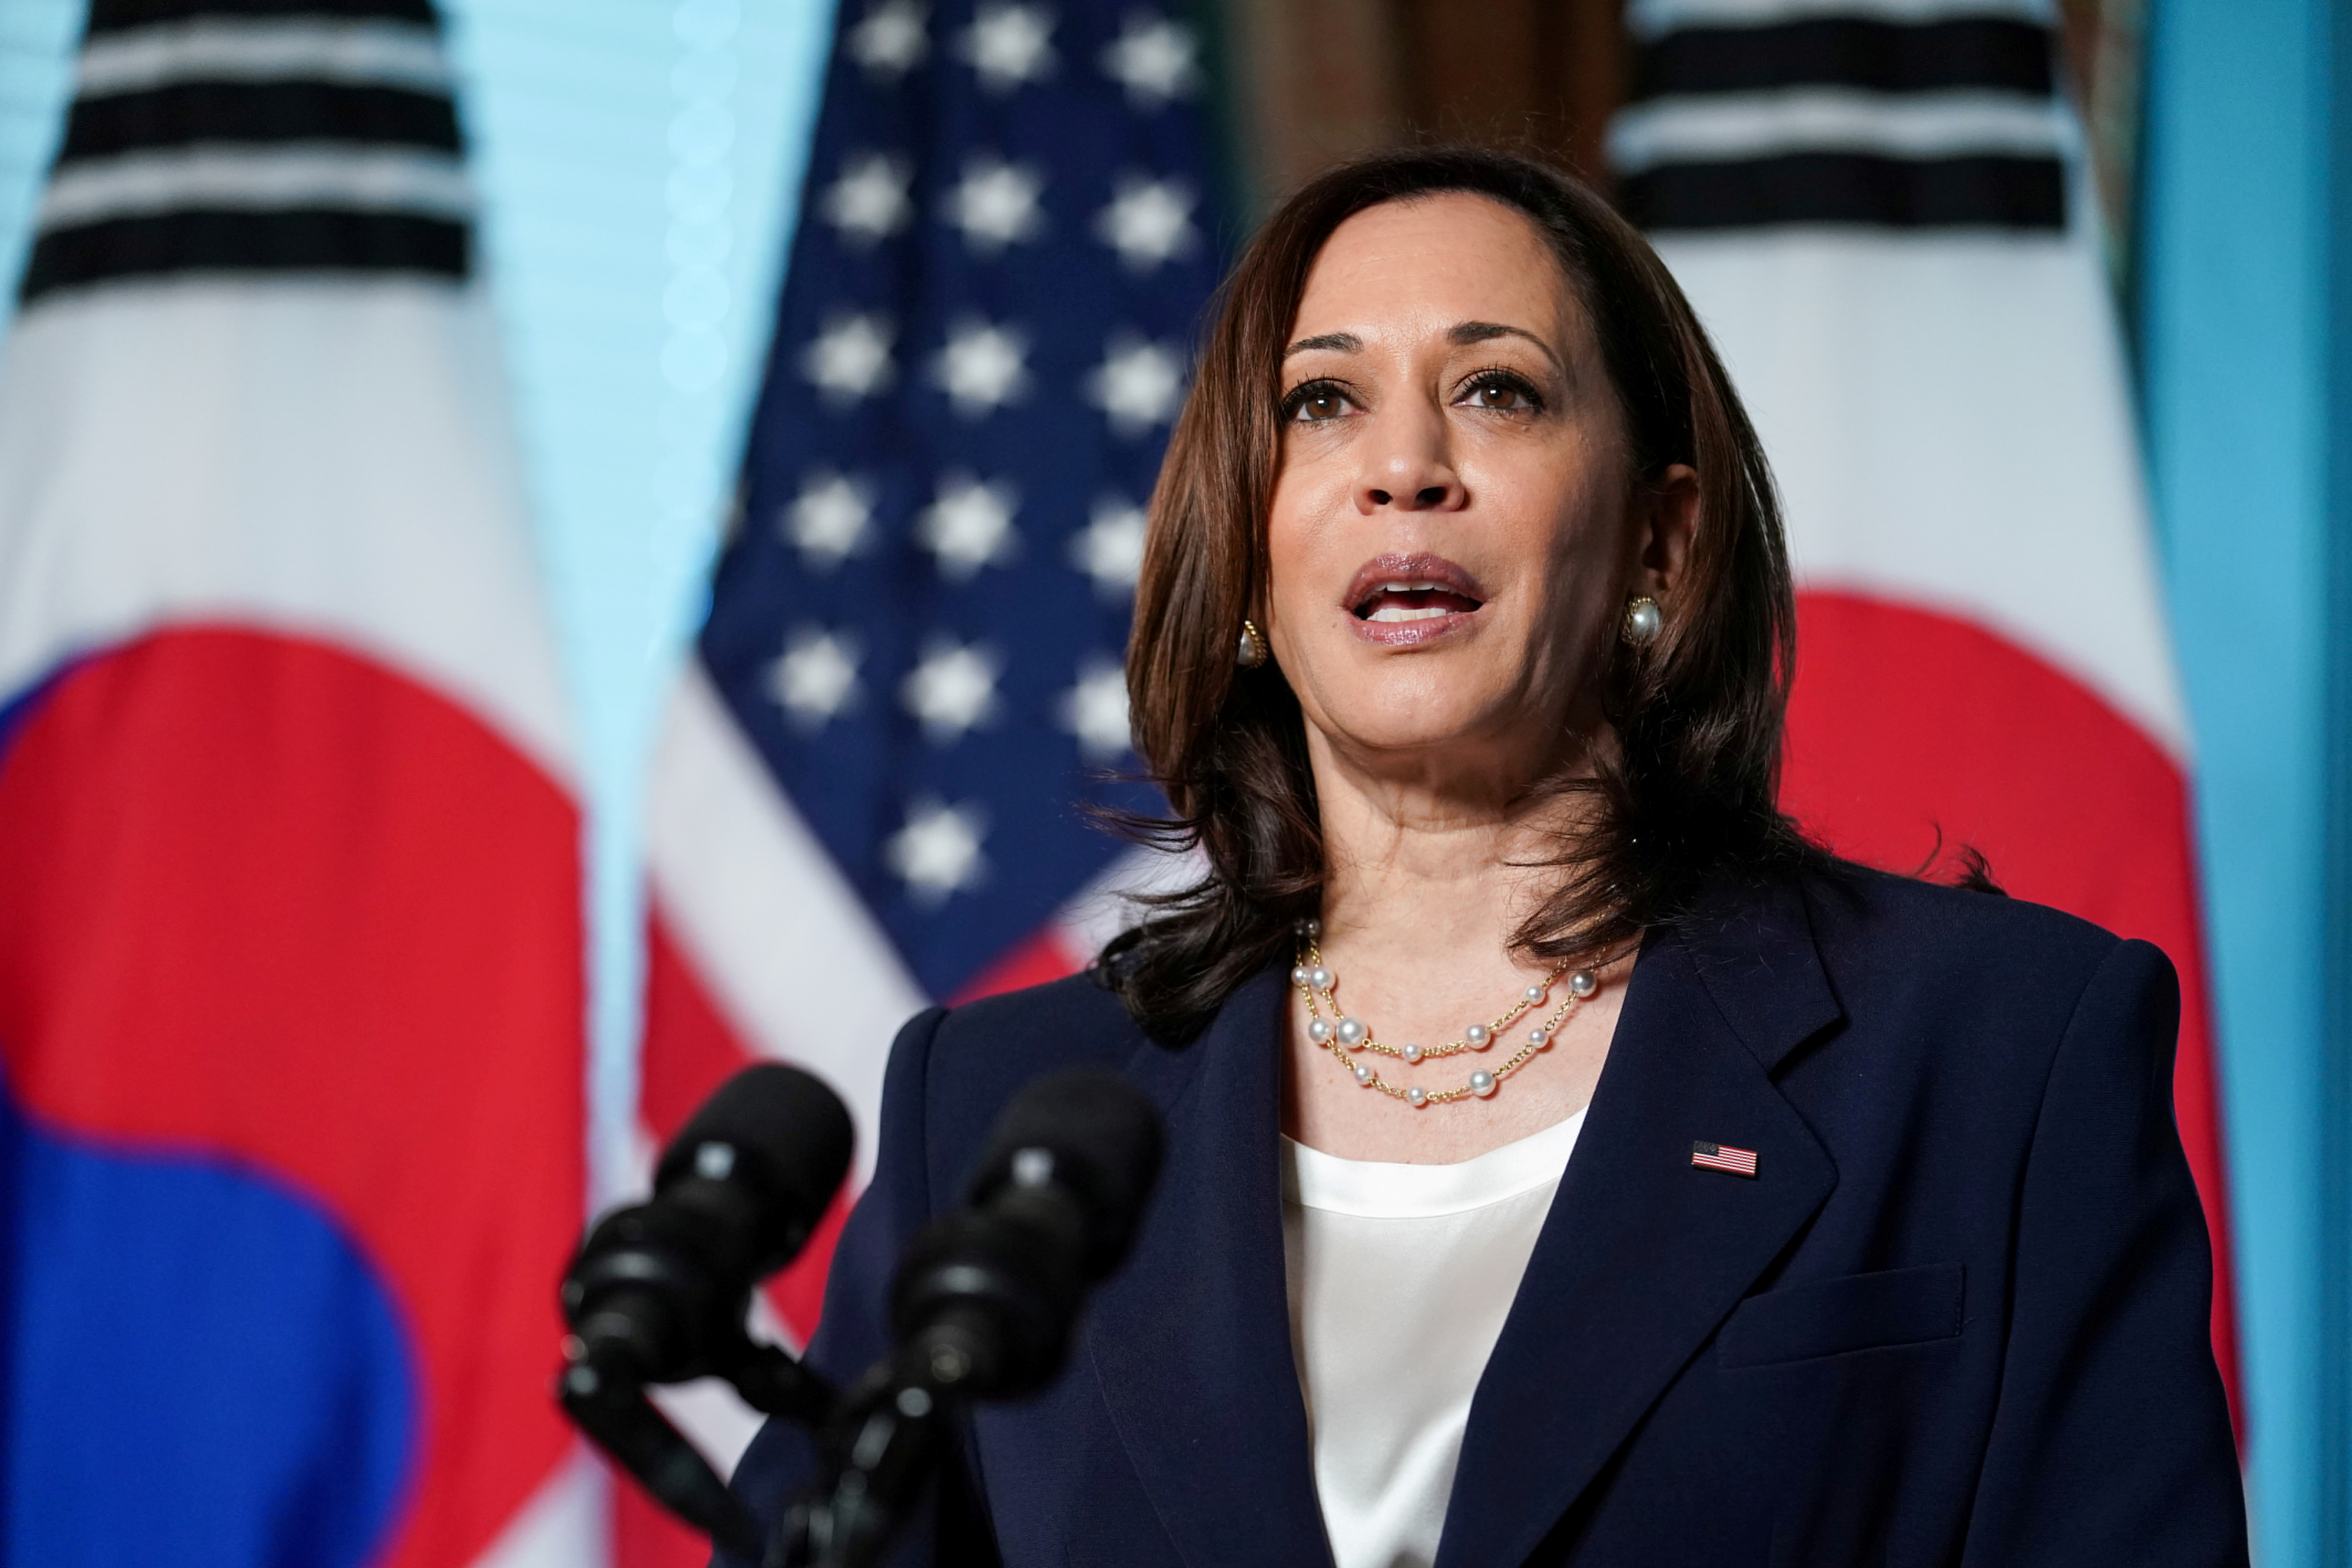 U.S. Vice President Kamala Harris delivers remarks before participating in a bilateral meeting with South Korean President Moon Jae-in at the Eisenhower Executive Office Building near the White House in Washington, U.S., May 21, 2021. REUTERS/Sarah Silbiger/File Photo